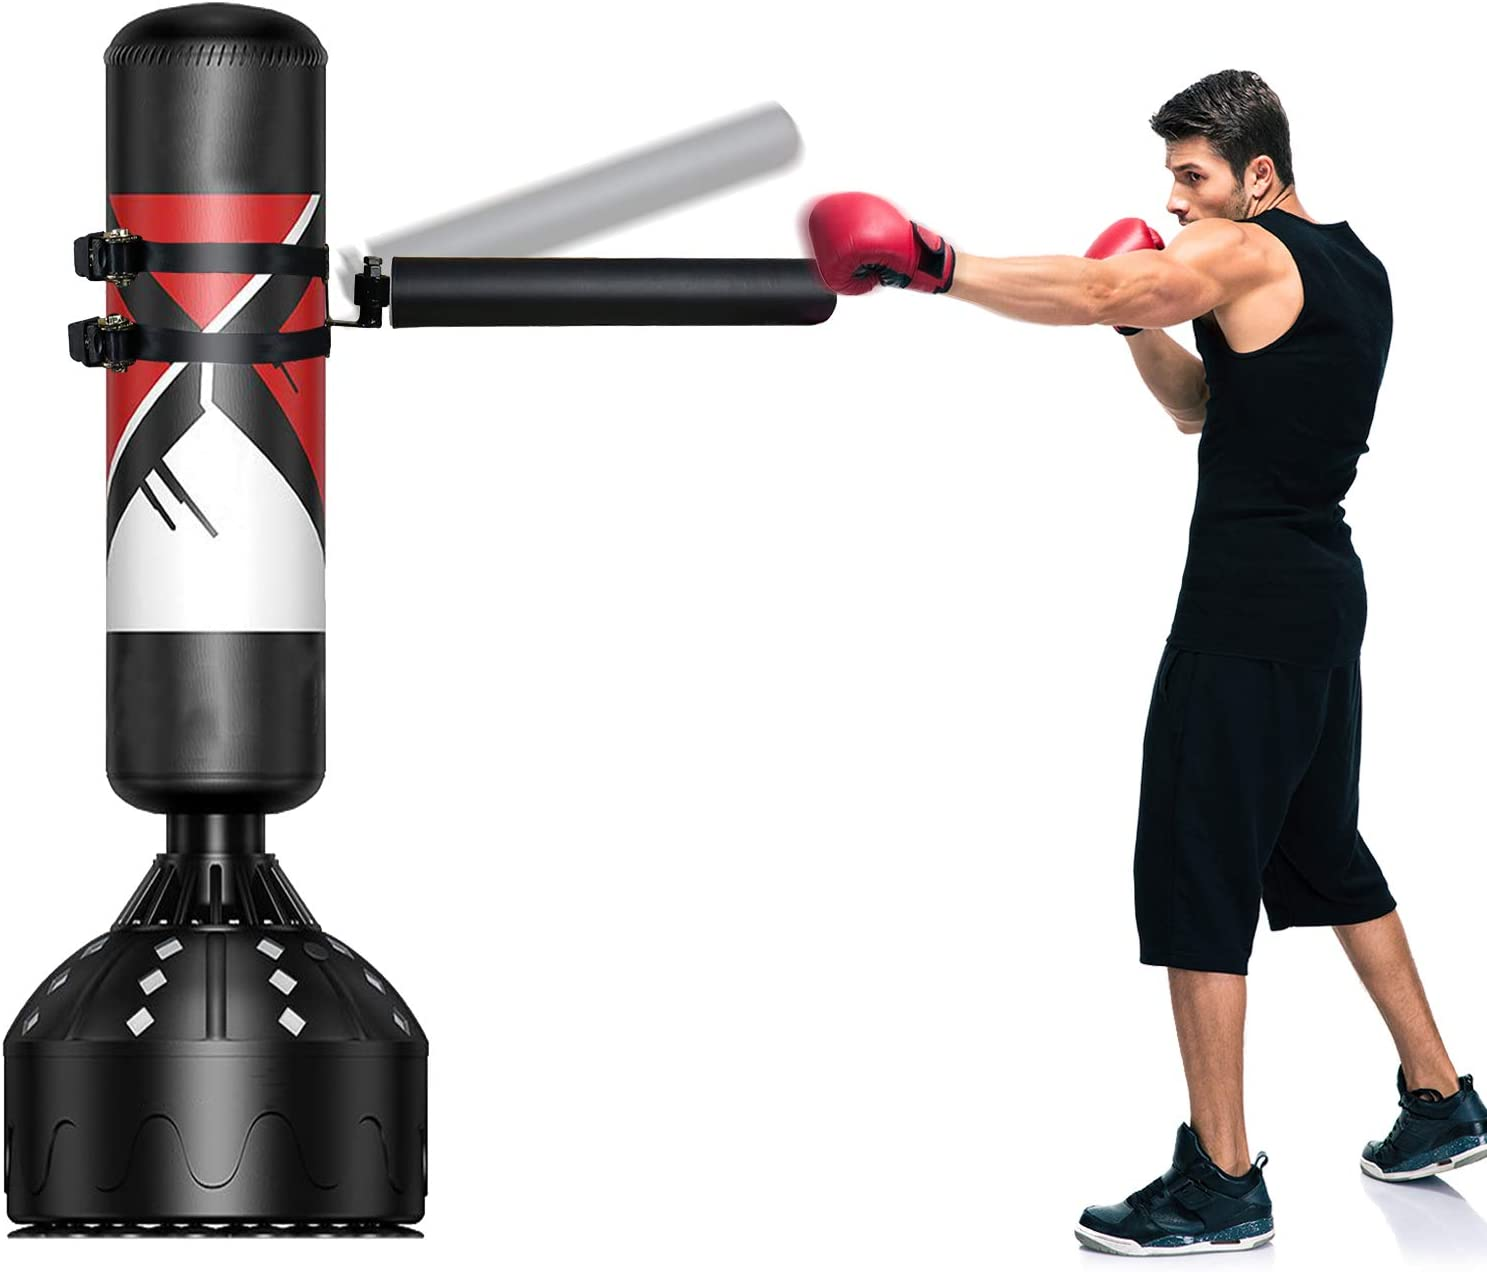 SYNTECSO Boxing Reflex Bar, Spinning Bar Martial Art for Punching Bag and Boxing Dummy : Sports & Outdoors